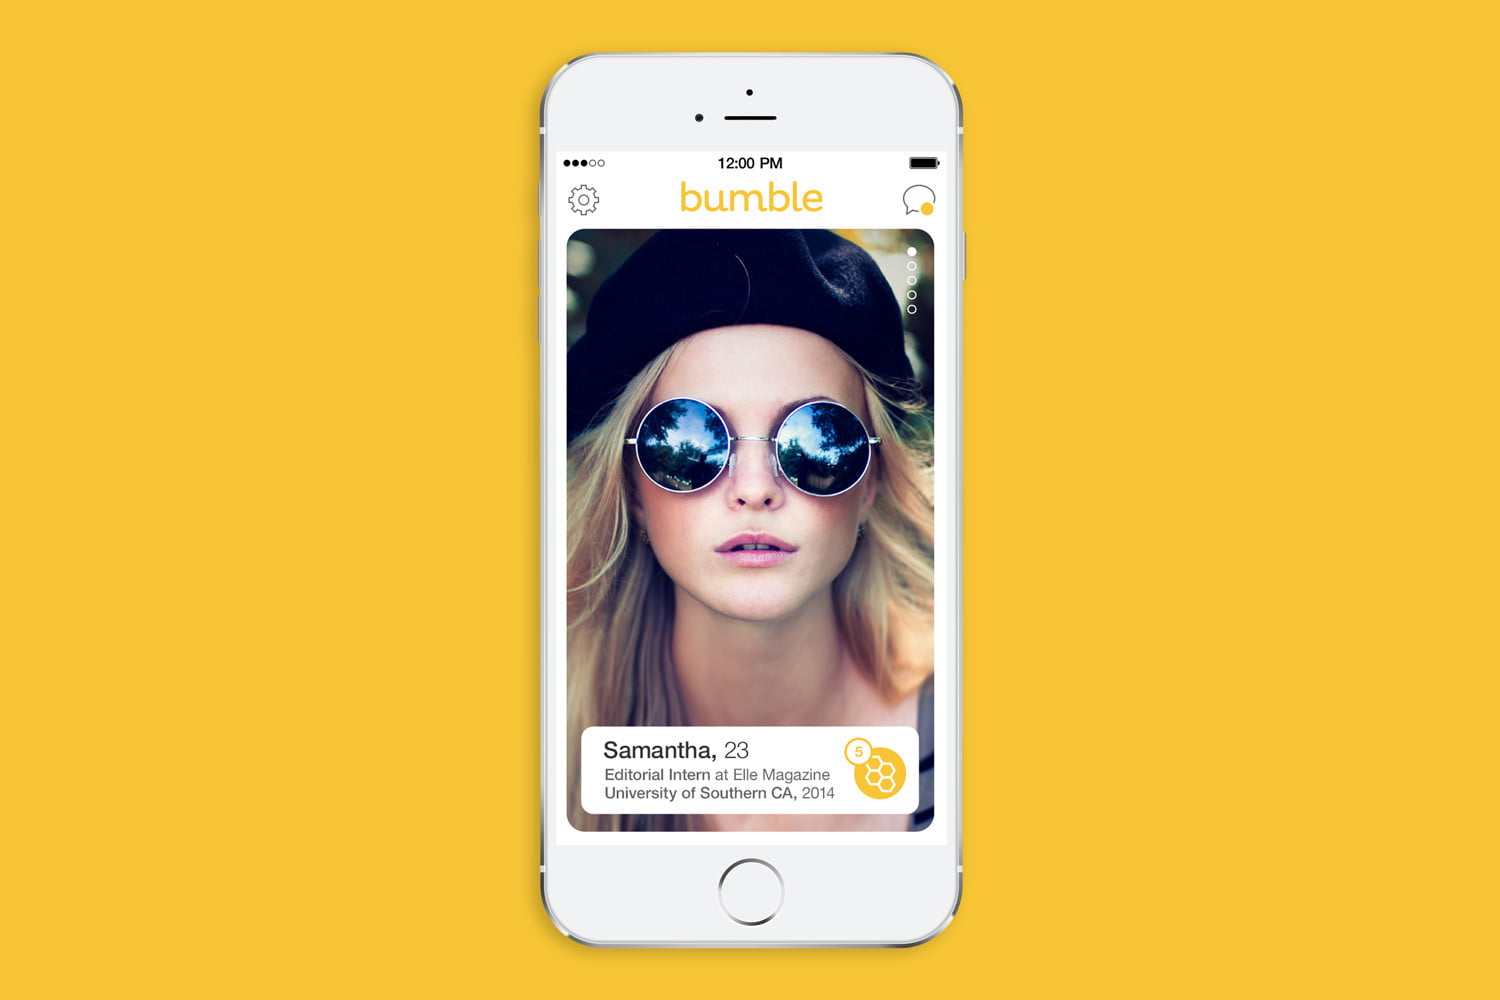 bumble bff mode dating app 5